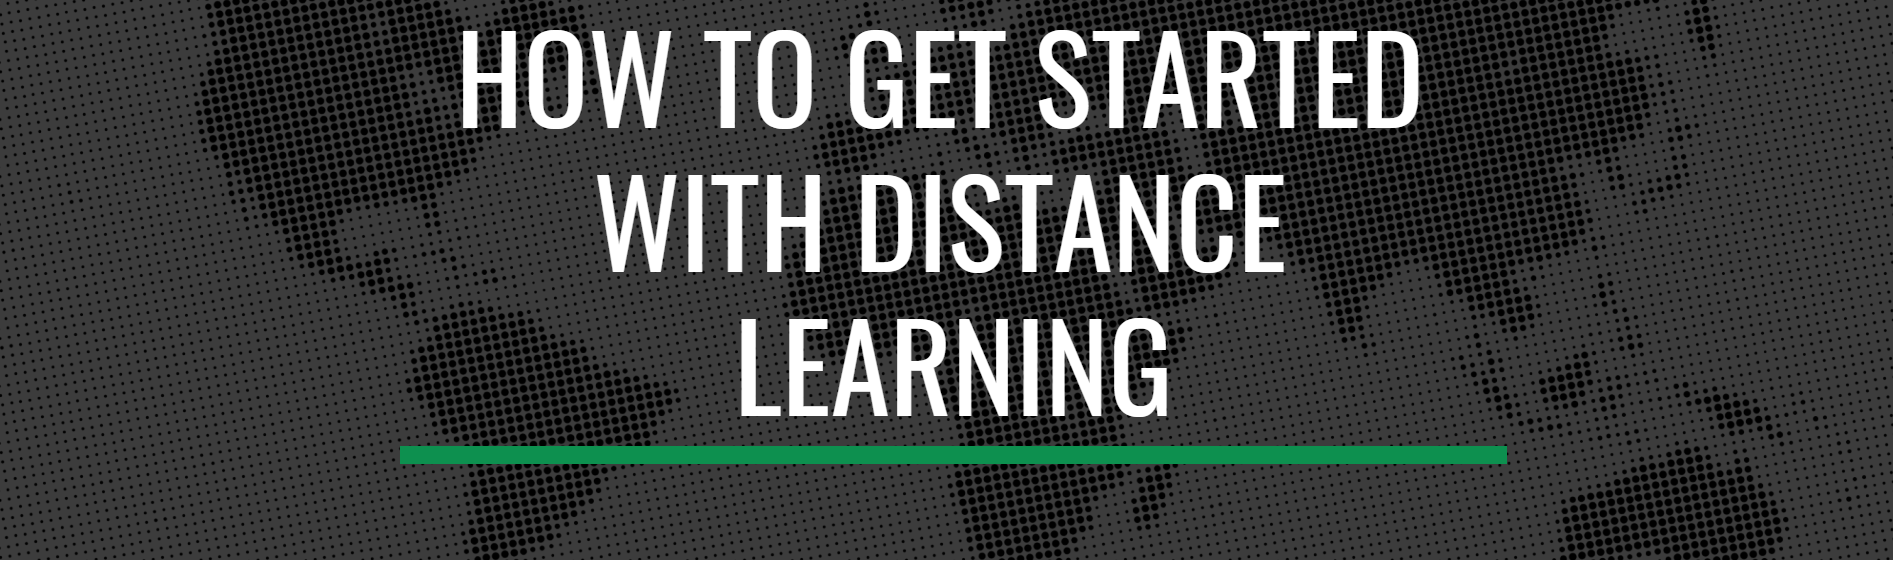 How To Get Started With Distance Learning